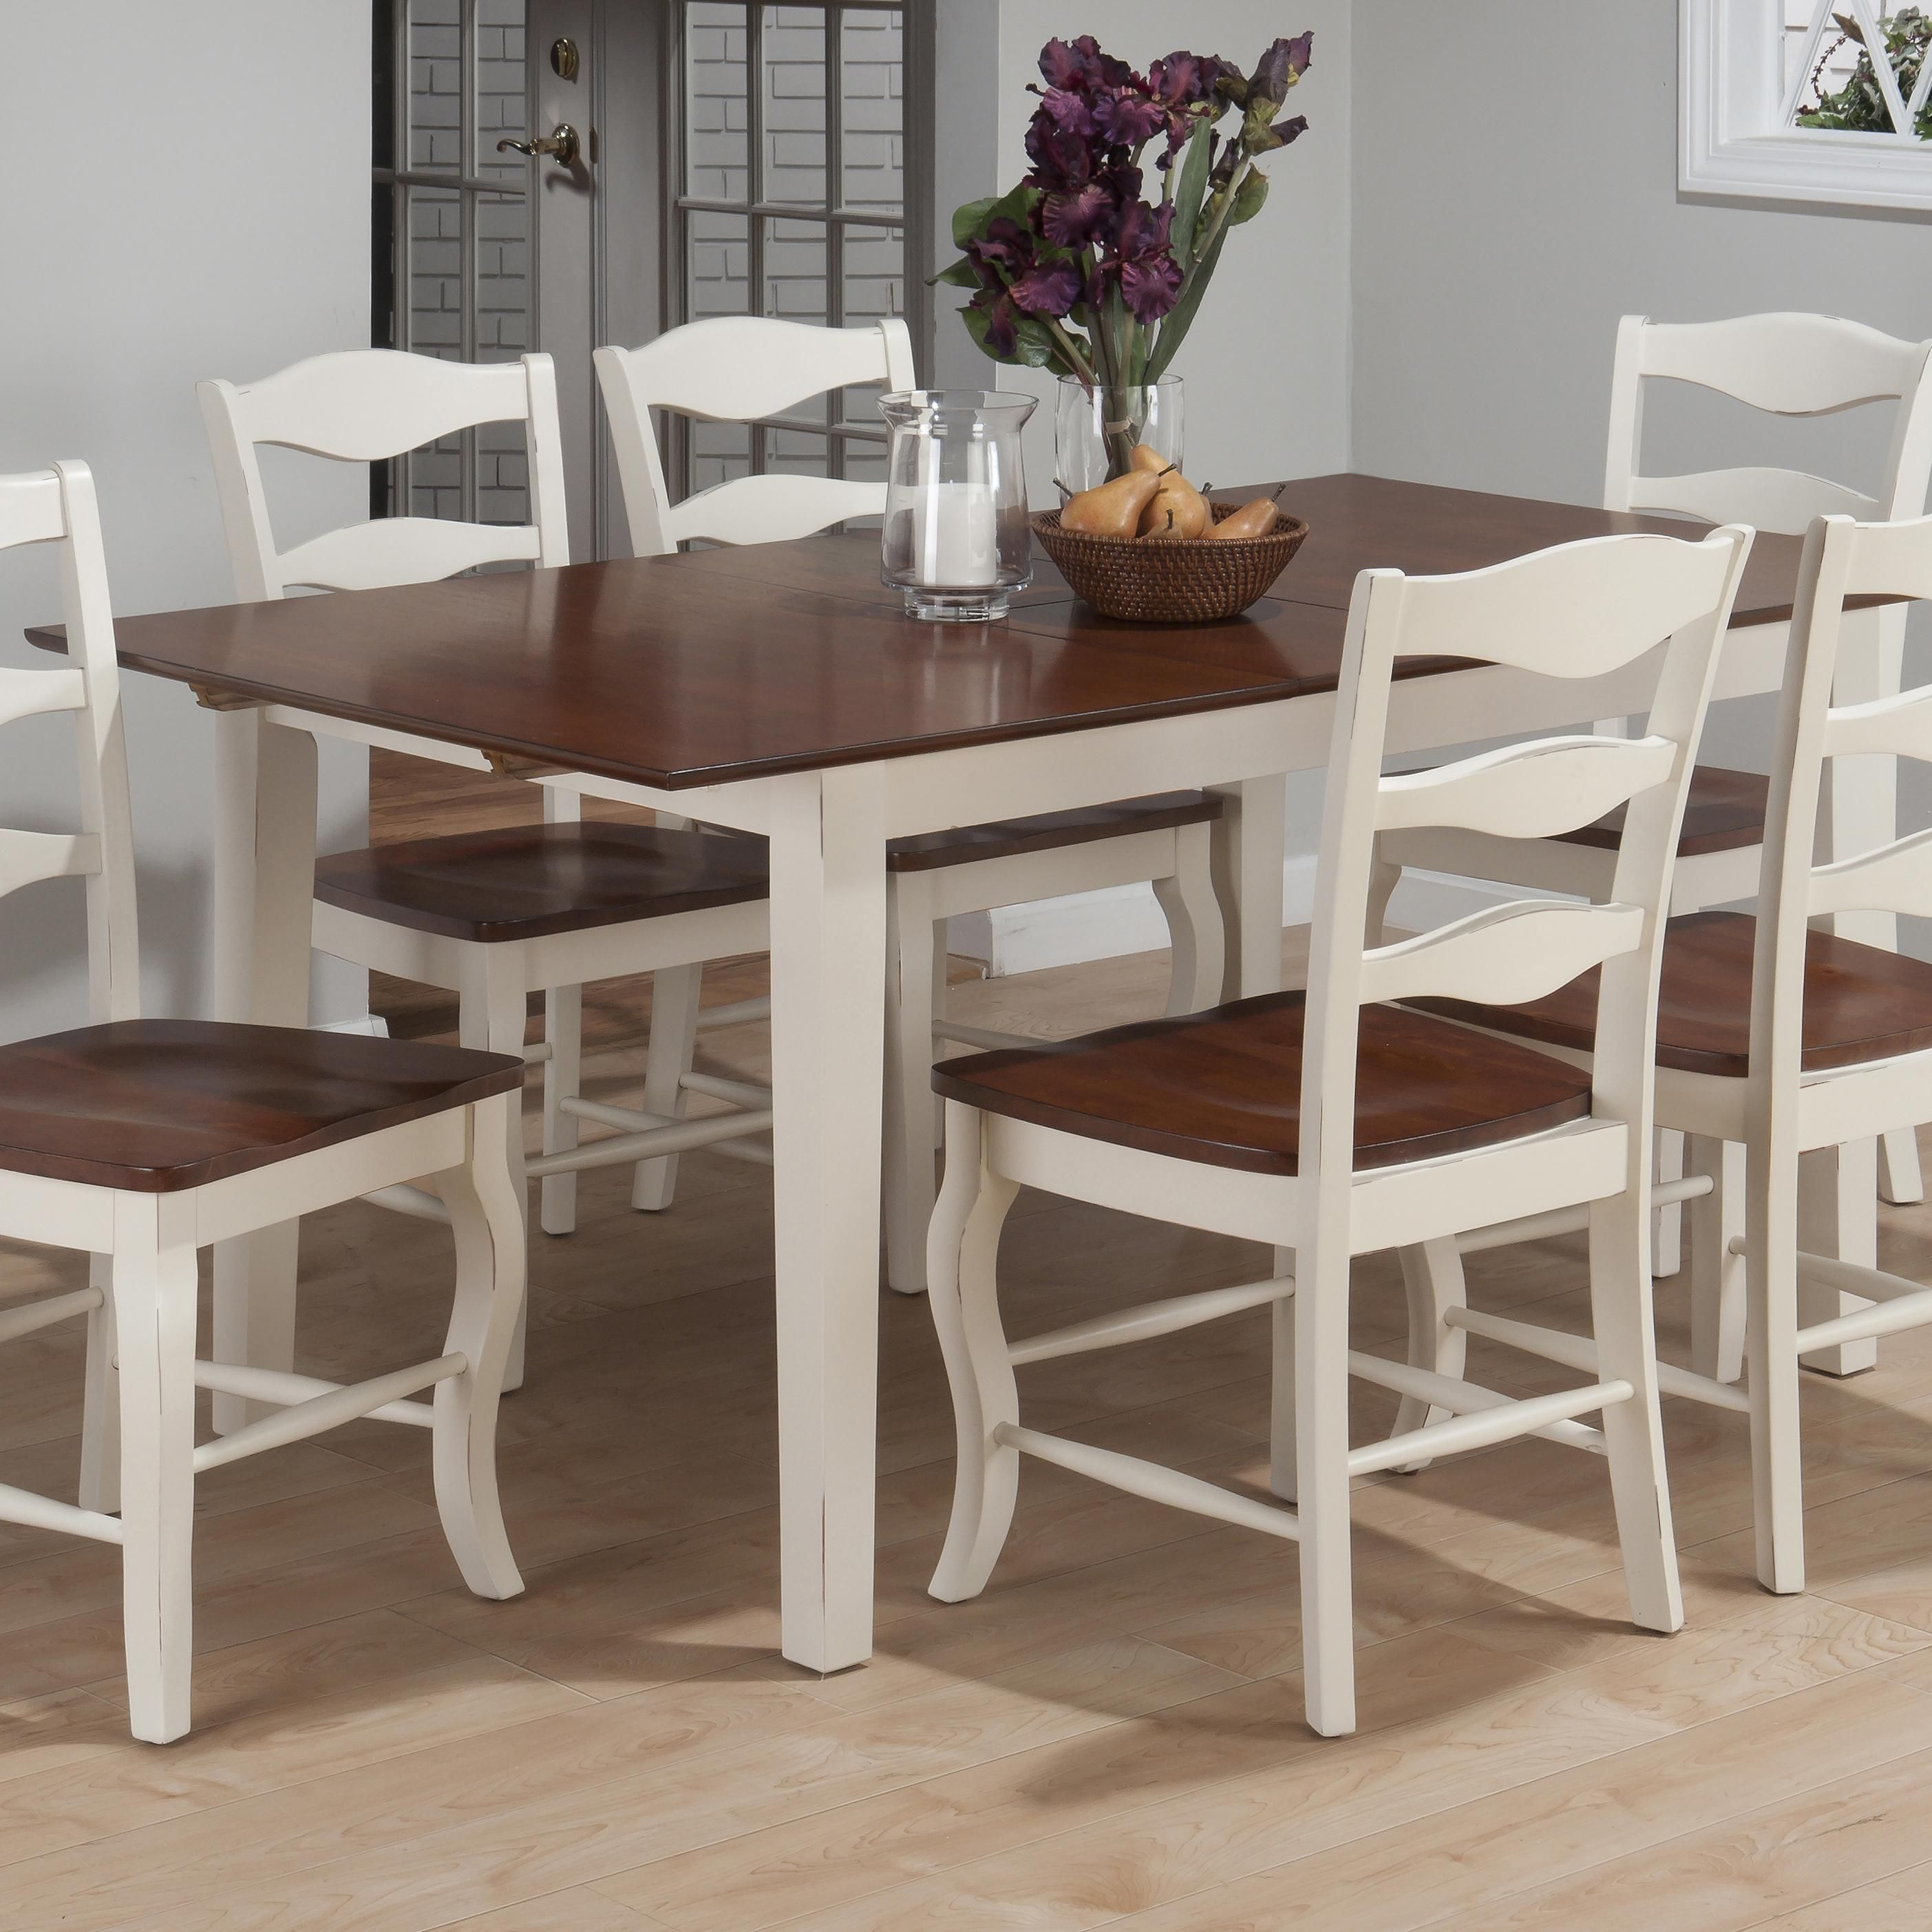 Jcpenney Dining Room Sets] Picture Living Room Furniture ...